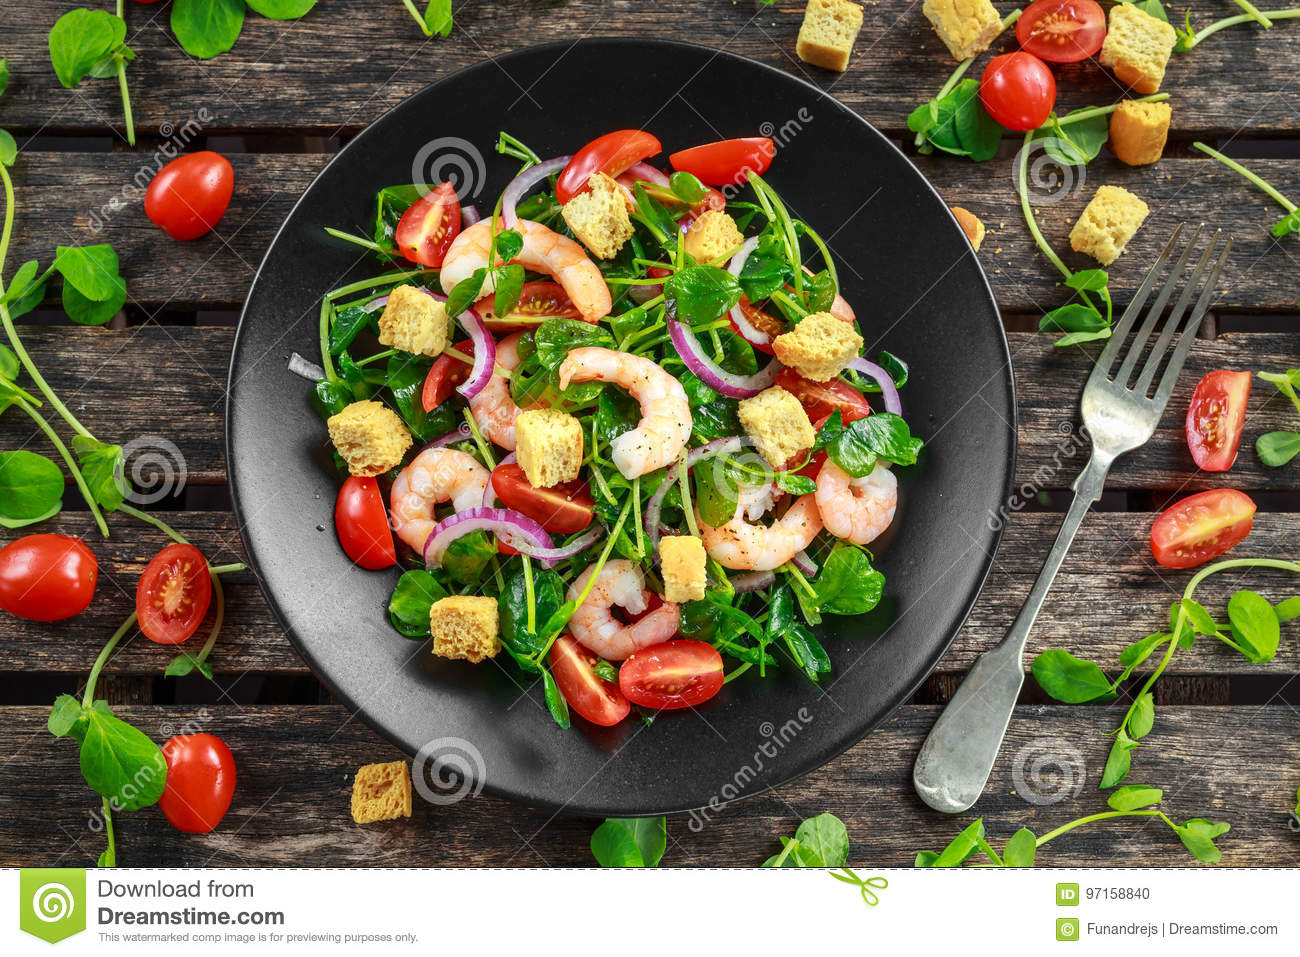 Fresh Healthy Prawns salad with tomatoes, red onion on black plate. concept healthy food